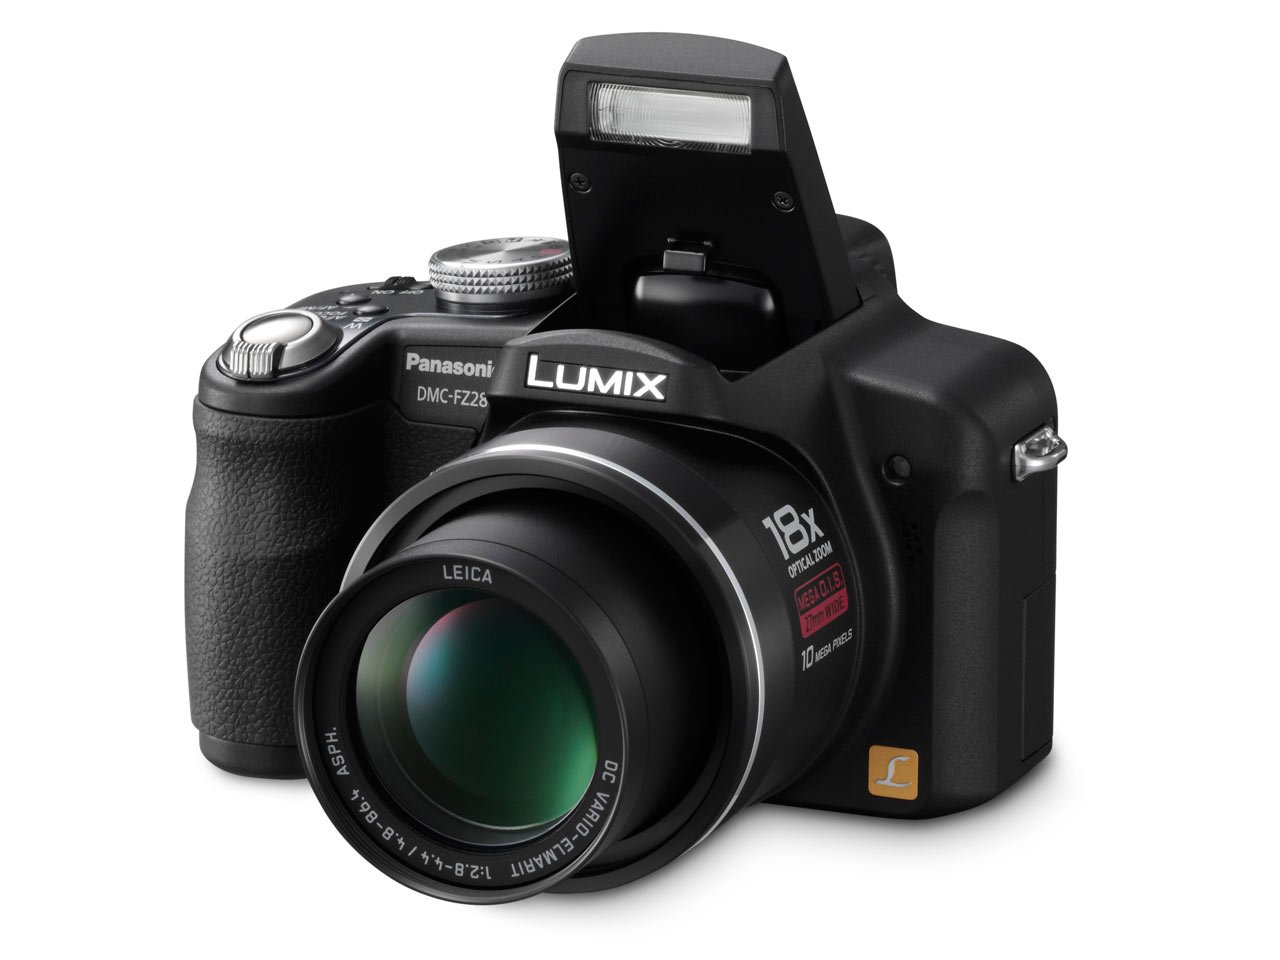 Panasonic Lumix DMC-FZ28K 10MP Digital Camera with 18x Wide Angle MEGA Optical Image Stabilized Zoom (Black)